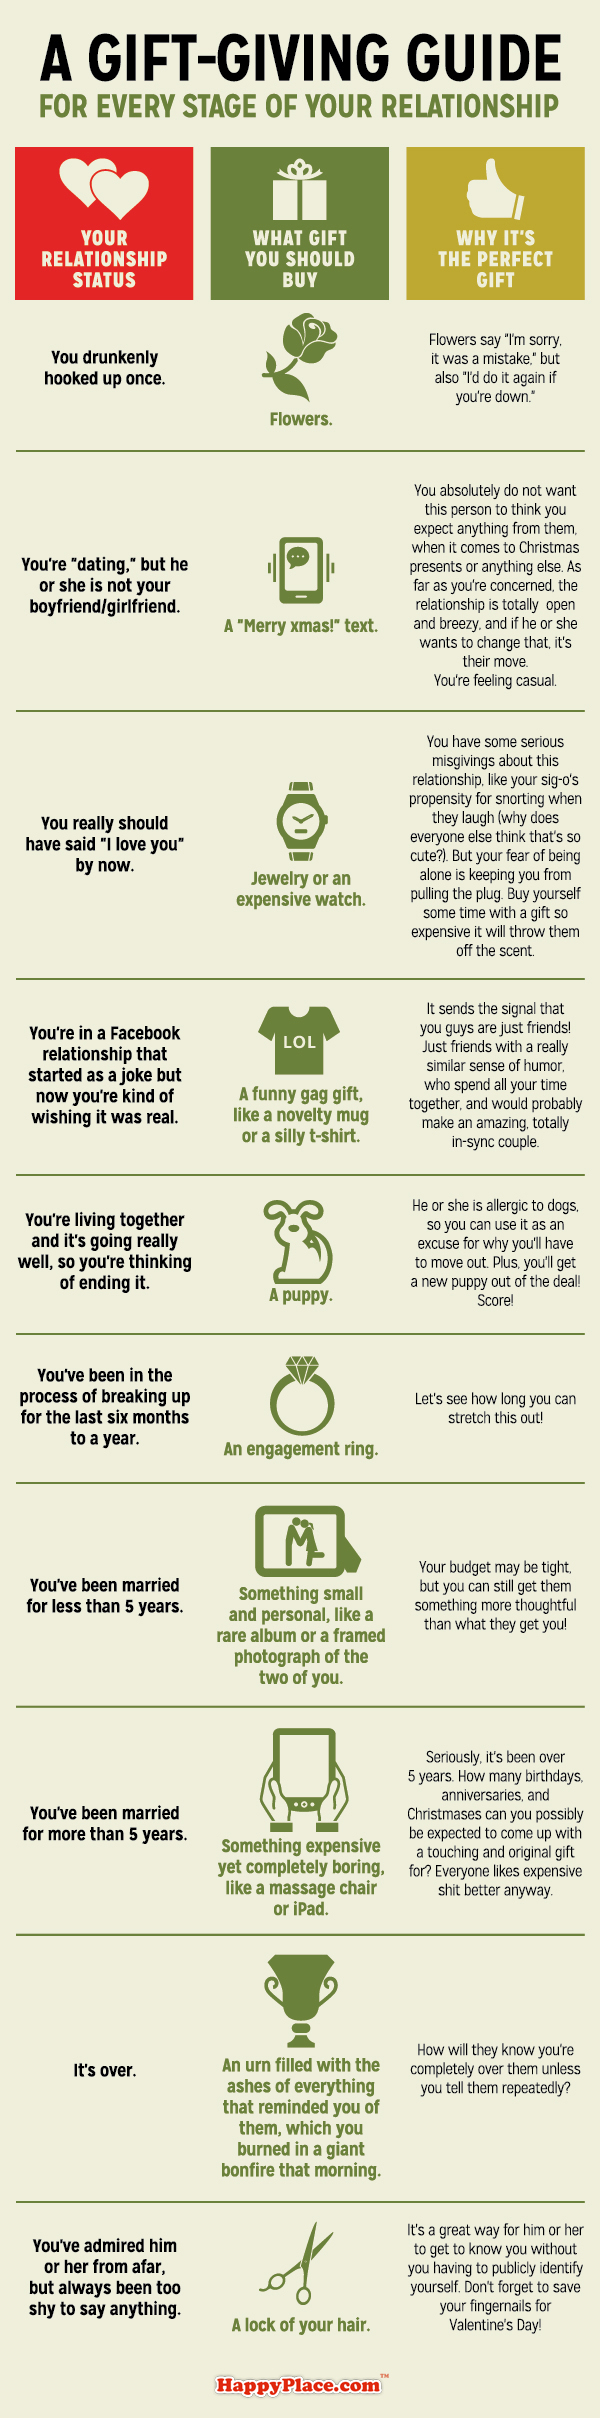 A gift-giving guide for every stage of your relationship.